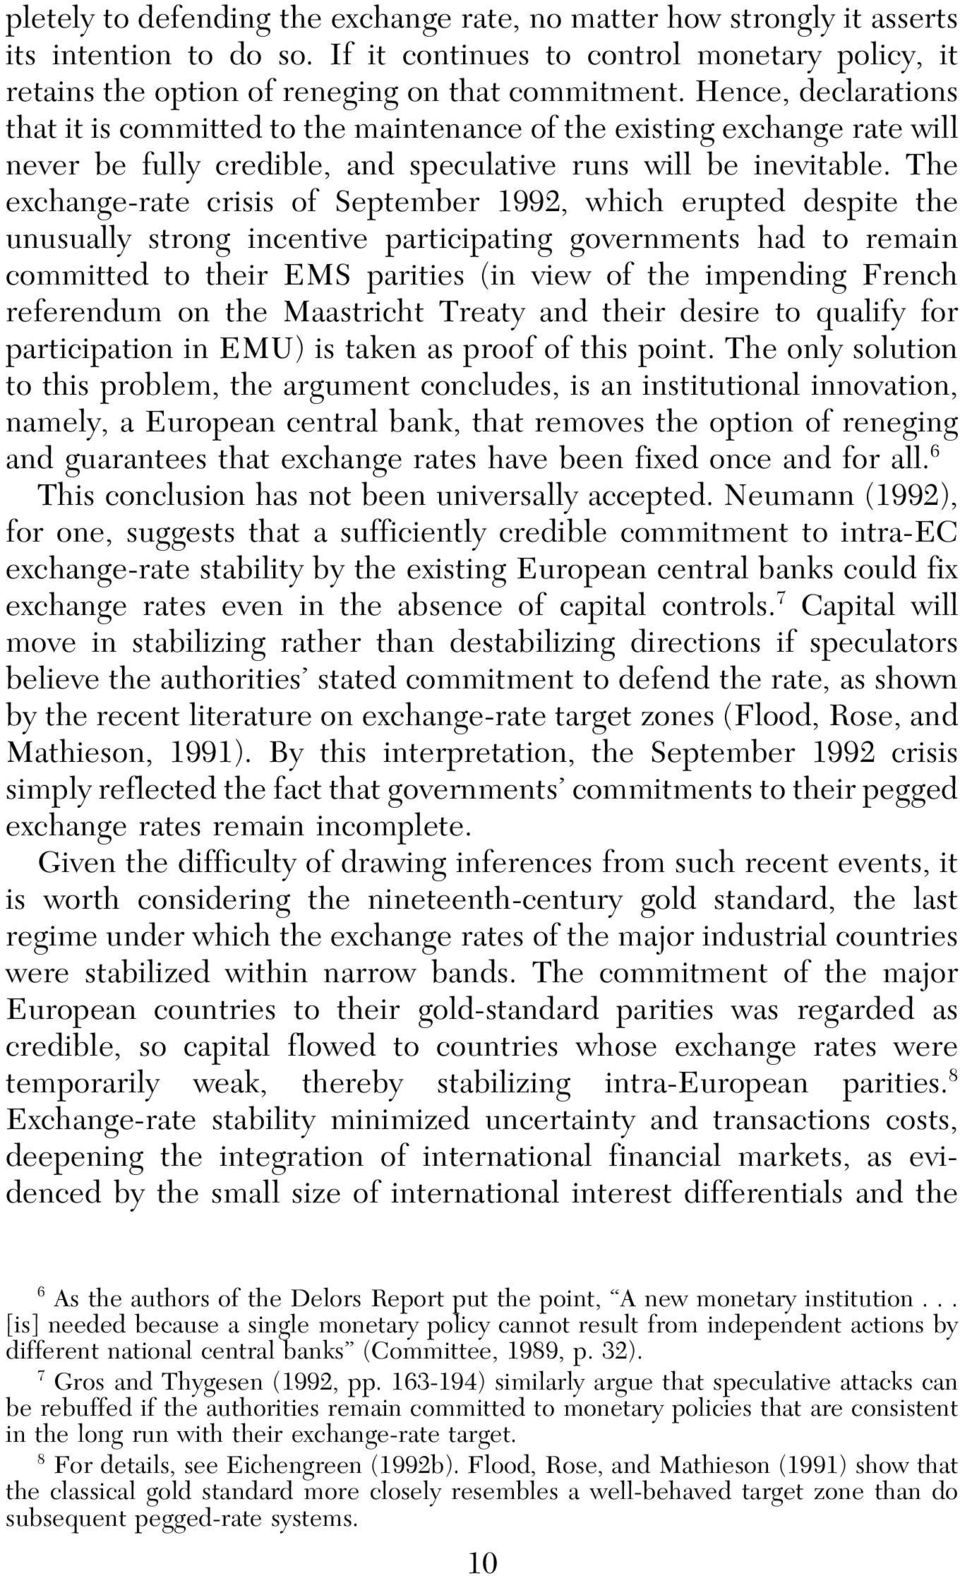 The exchange-rate crisis of September 1992, which erupted despite the unusually strong incentive participating governments had to remain committed to their EMS parities (in view of the impending